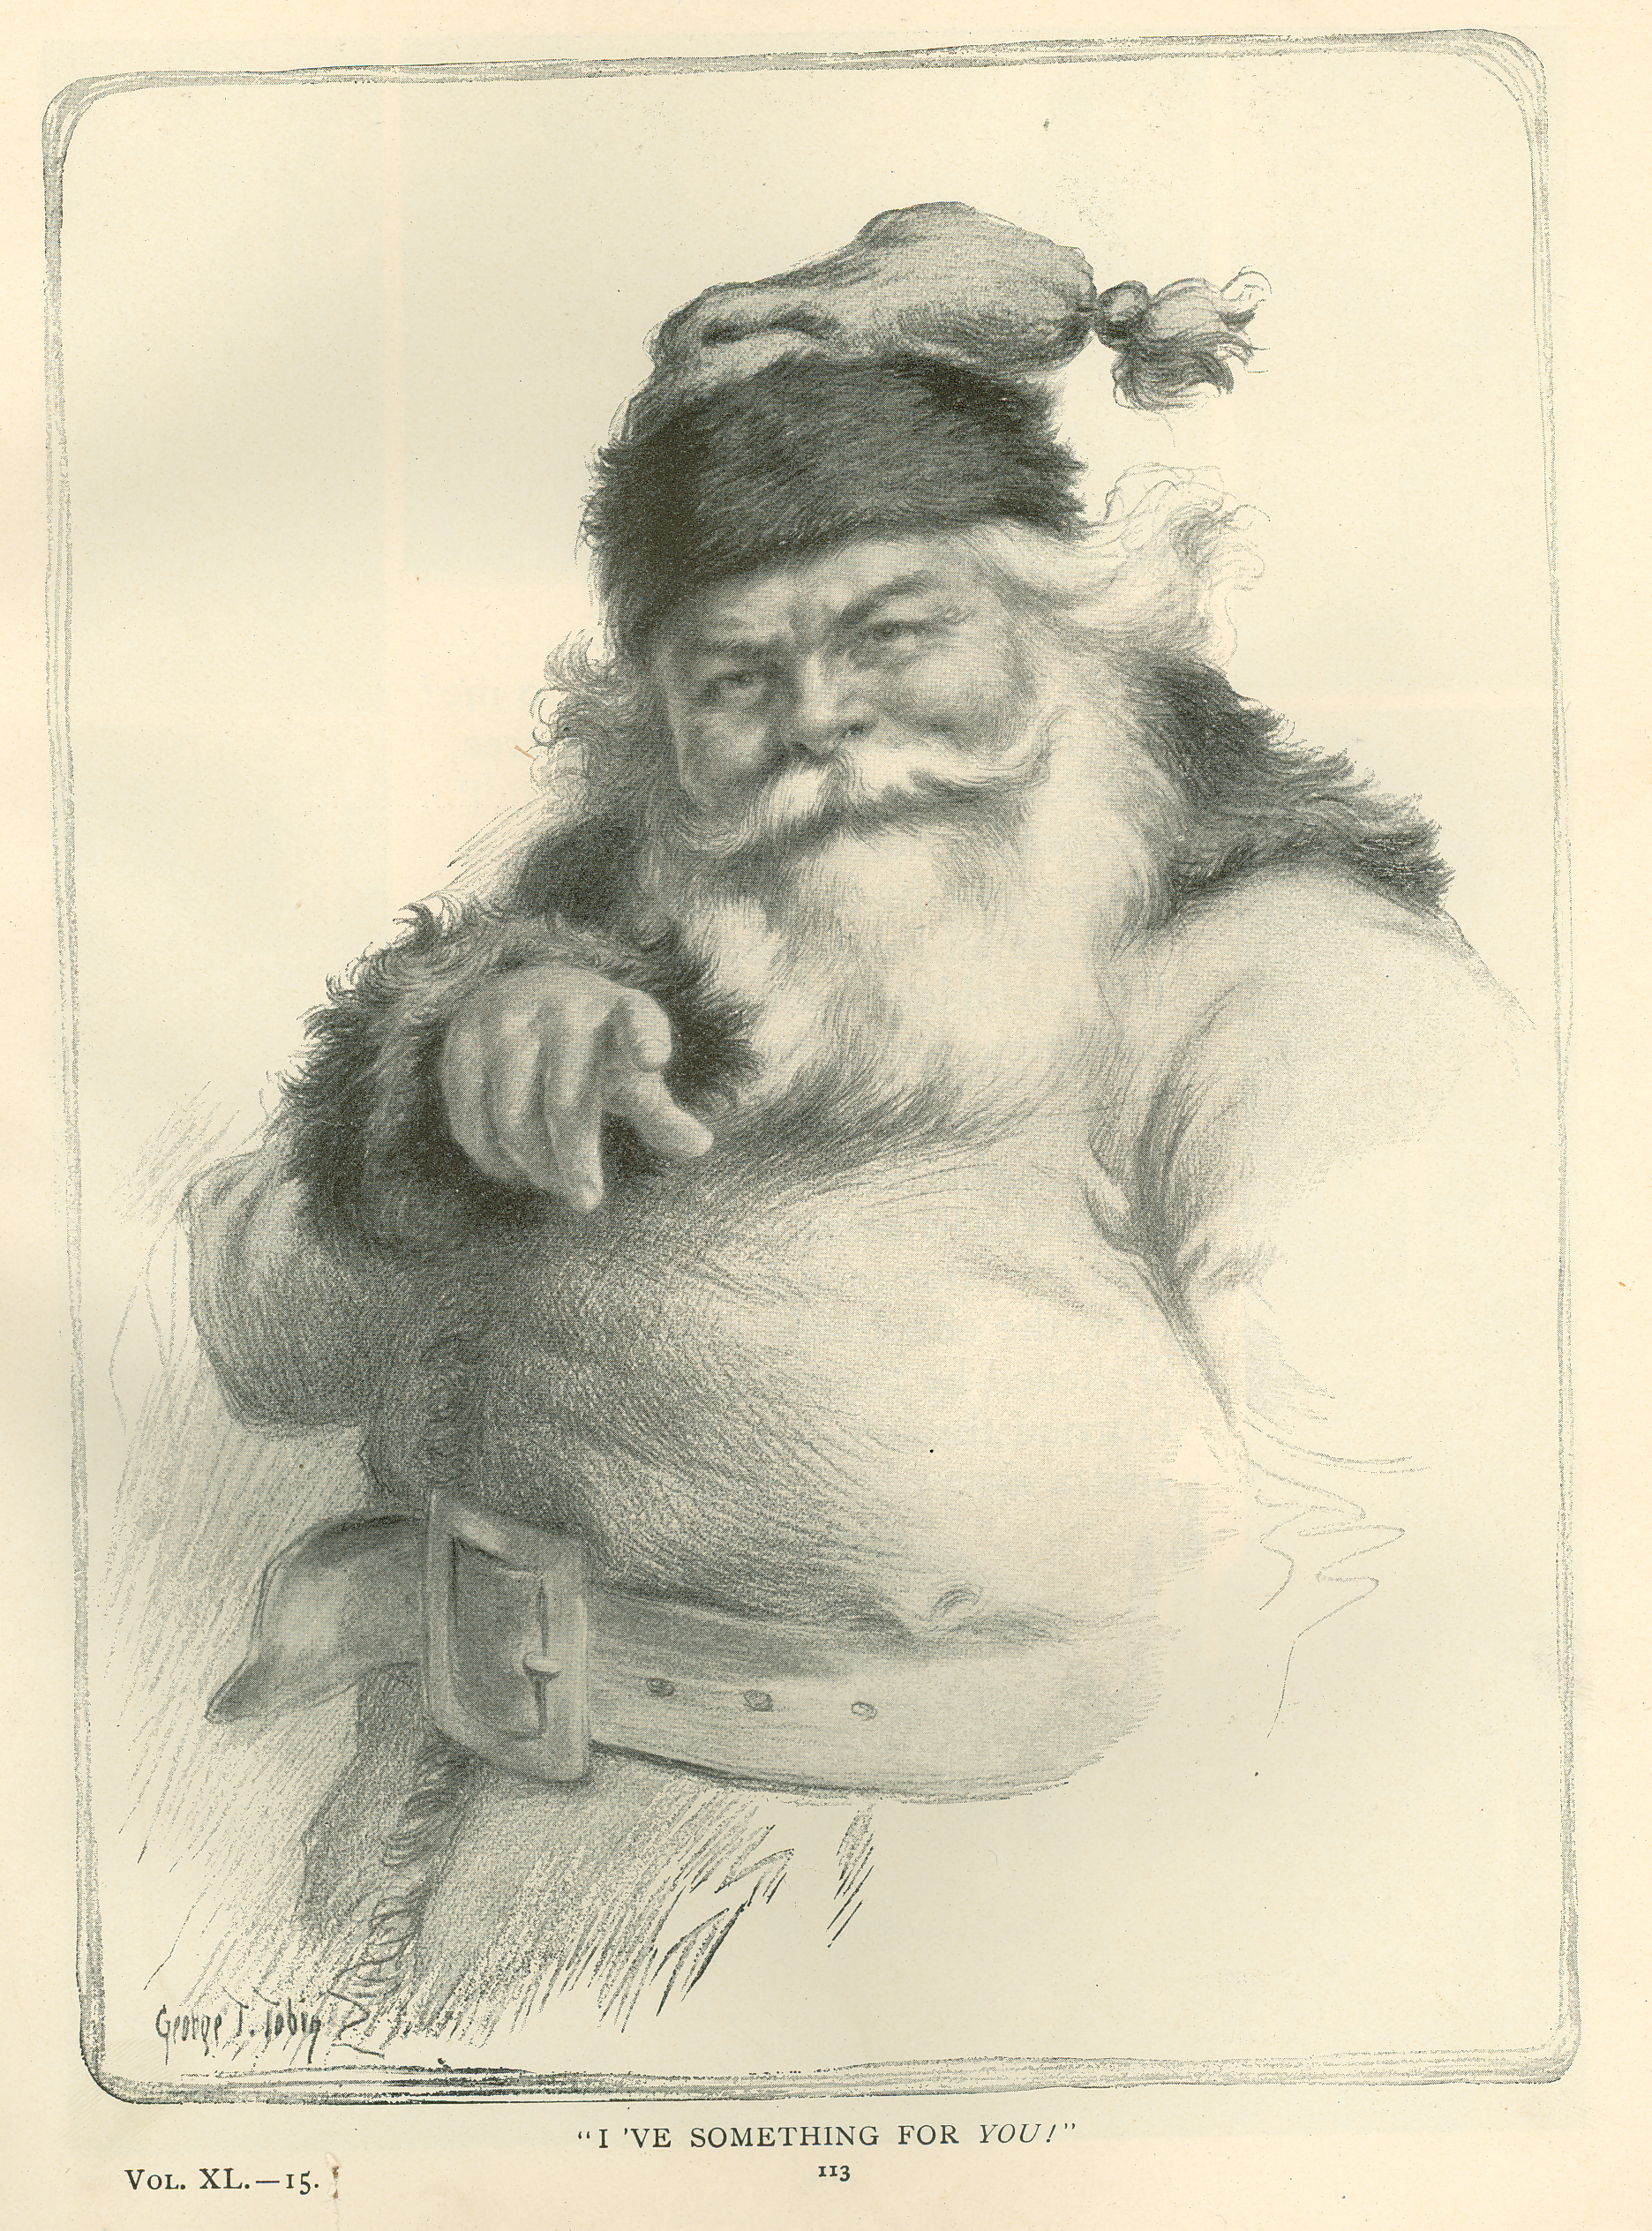 St. Nicholas: An Illustrated Magazine for Young Folks, Vol. 40, Part I, November 1912 to April 1913. Later issues of the magazine featured cover portraits of Santa Claus in the Christmas issues.